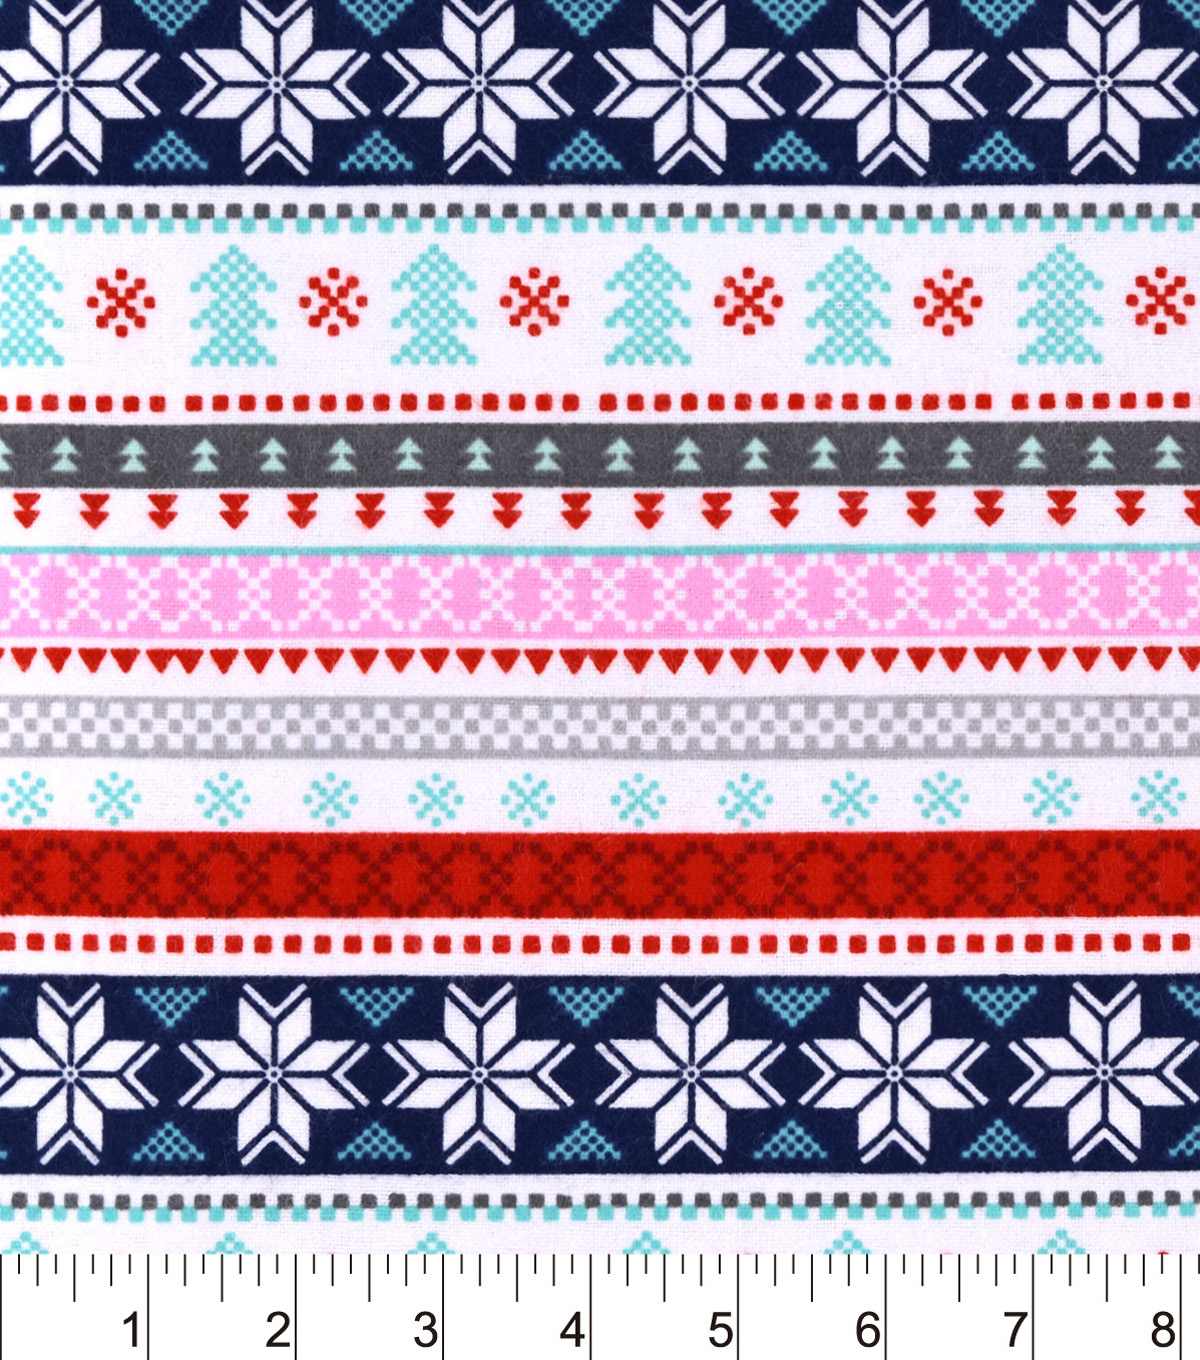 Snuggle Flannel Fabric -Snowflake Pink Blue